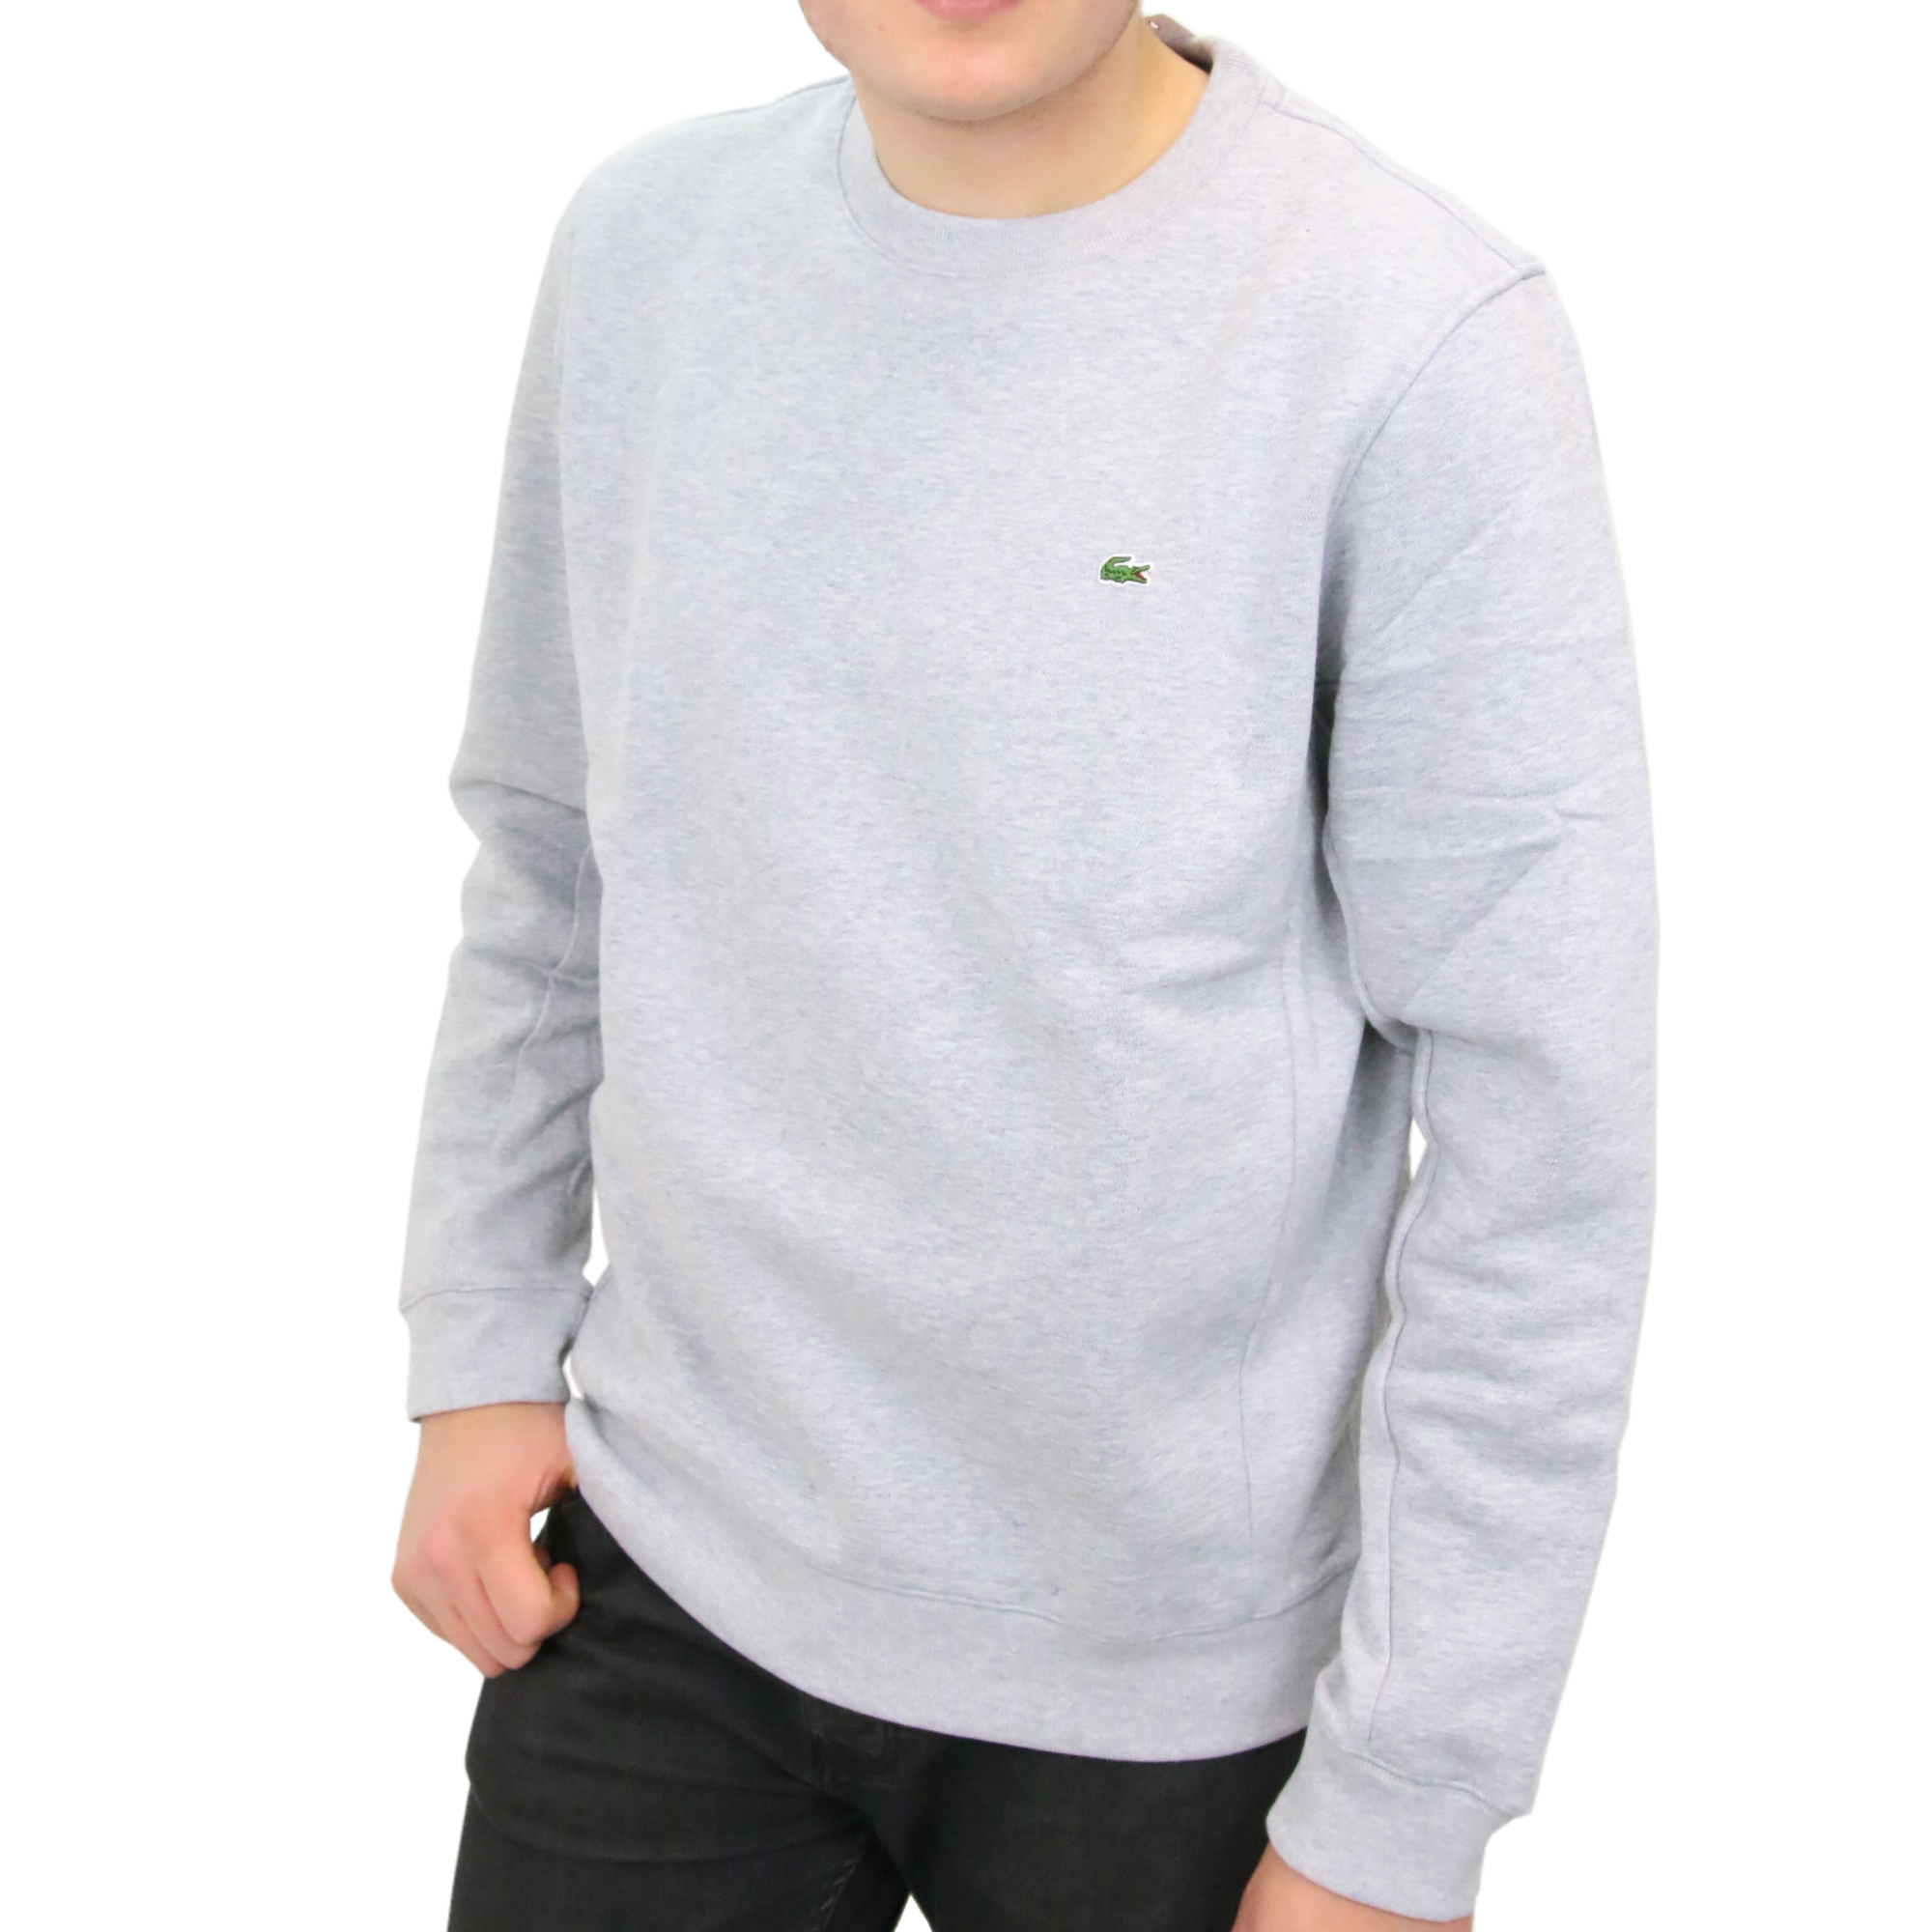 lacoste sweatshirt pullover rundhals langarm herren ebay. Black Bedroom Furniture Sets. Home Design Ideas